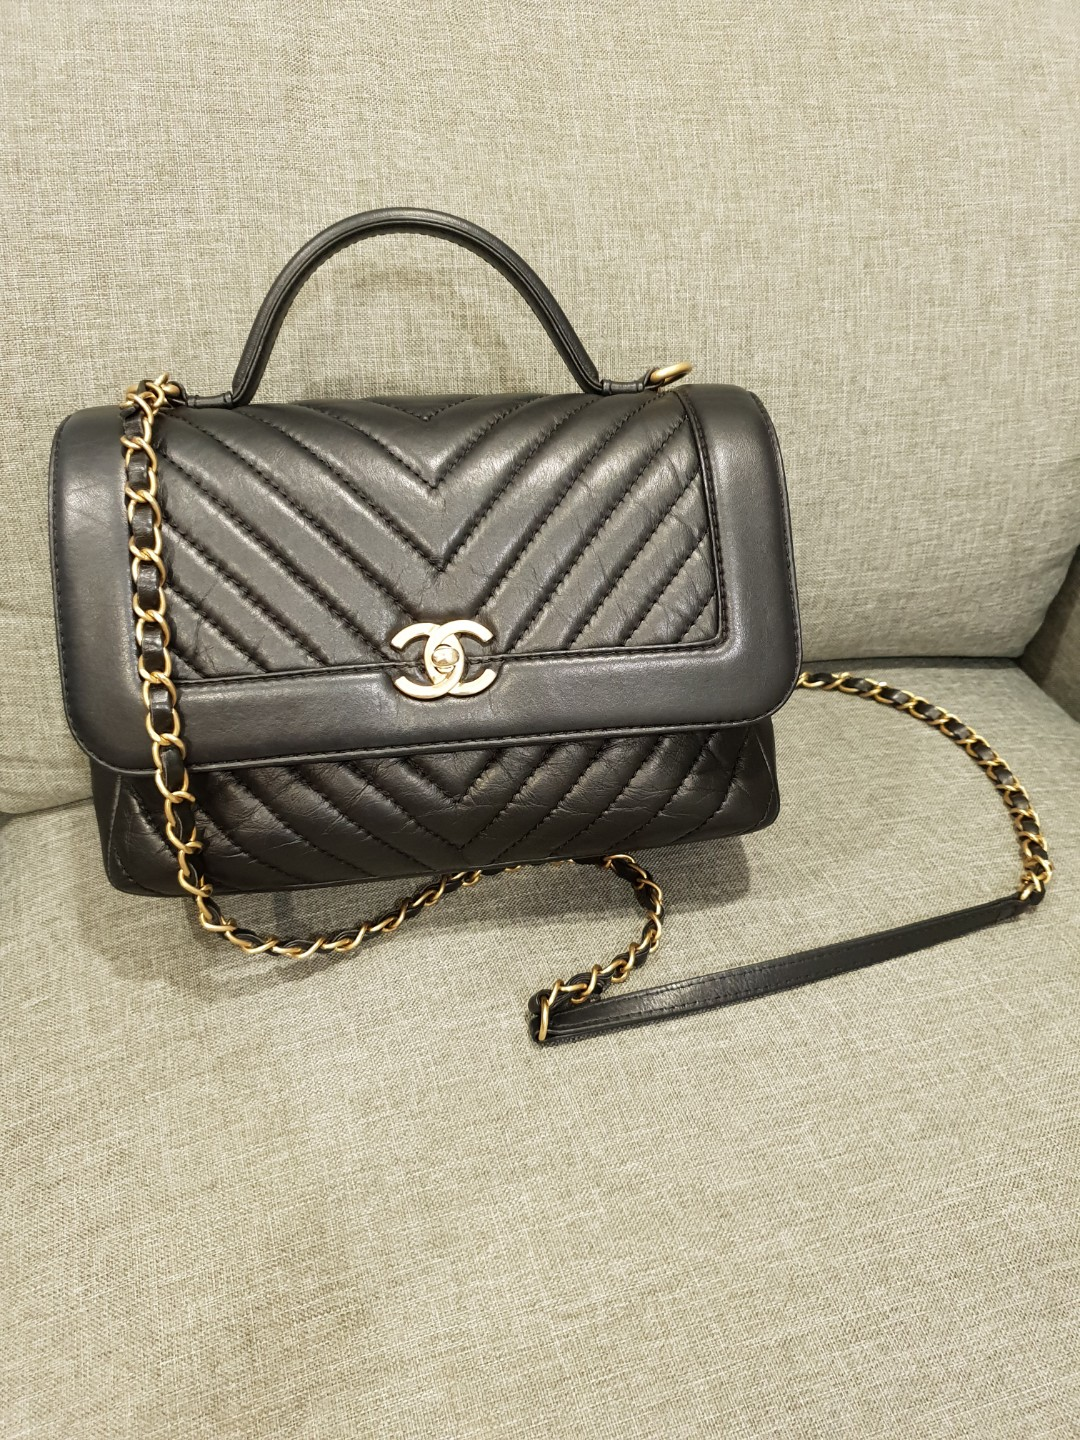 e32c7532a076 Pre-loved Authentic Chanel Chevron Flap Bag with Top Handle ...